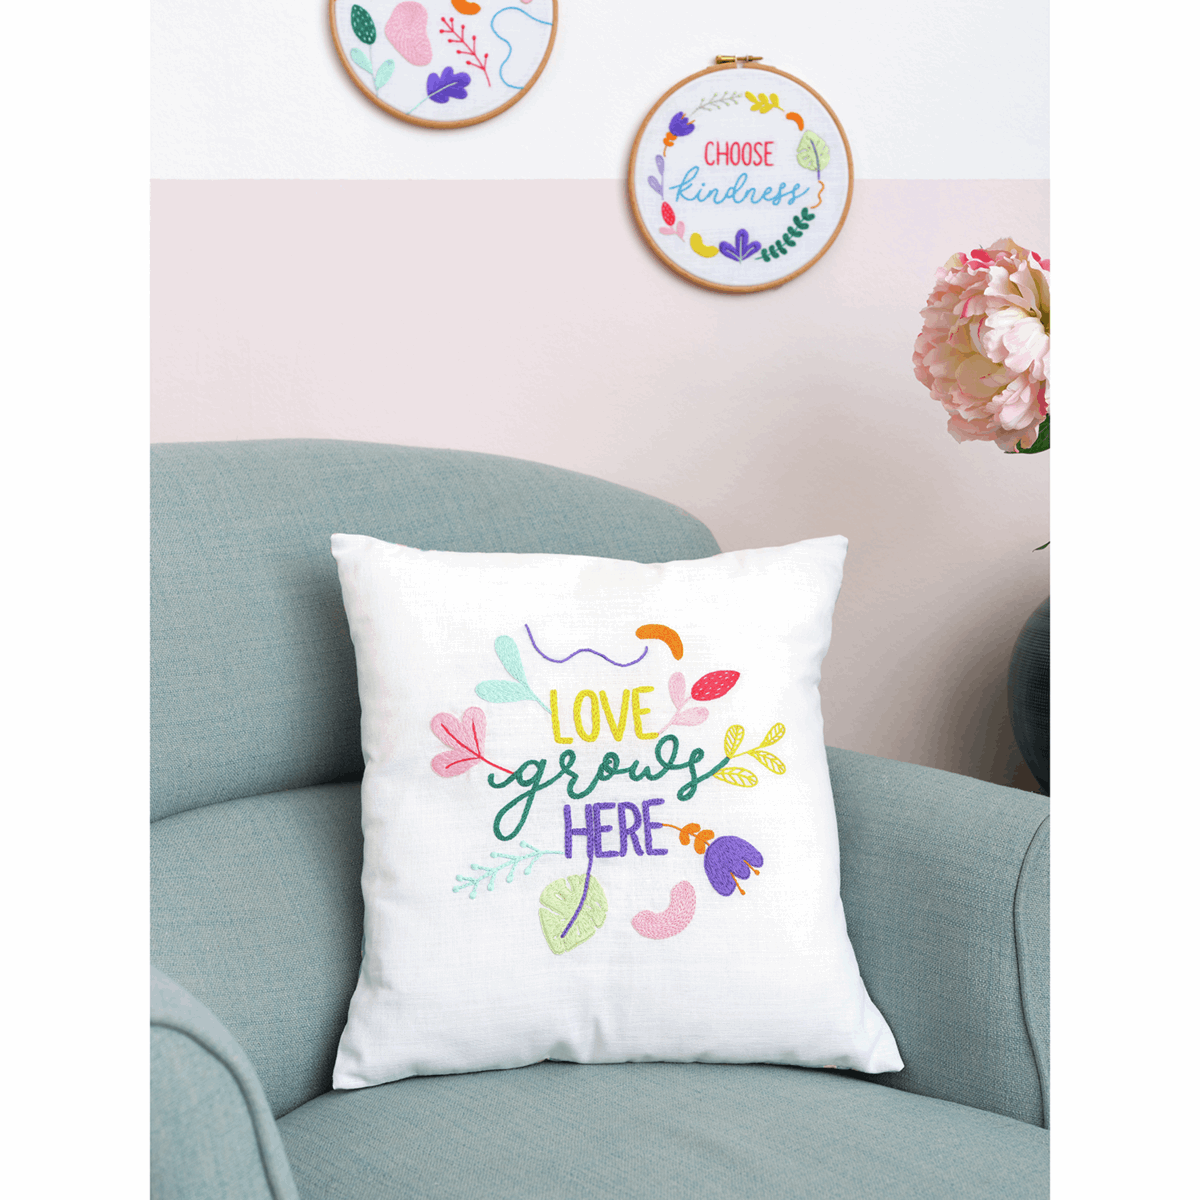 Picture of Embroidery Kit: Cushion: Essentials: Ana Clara: Love Grows